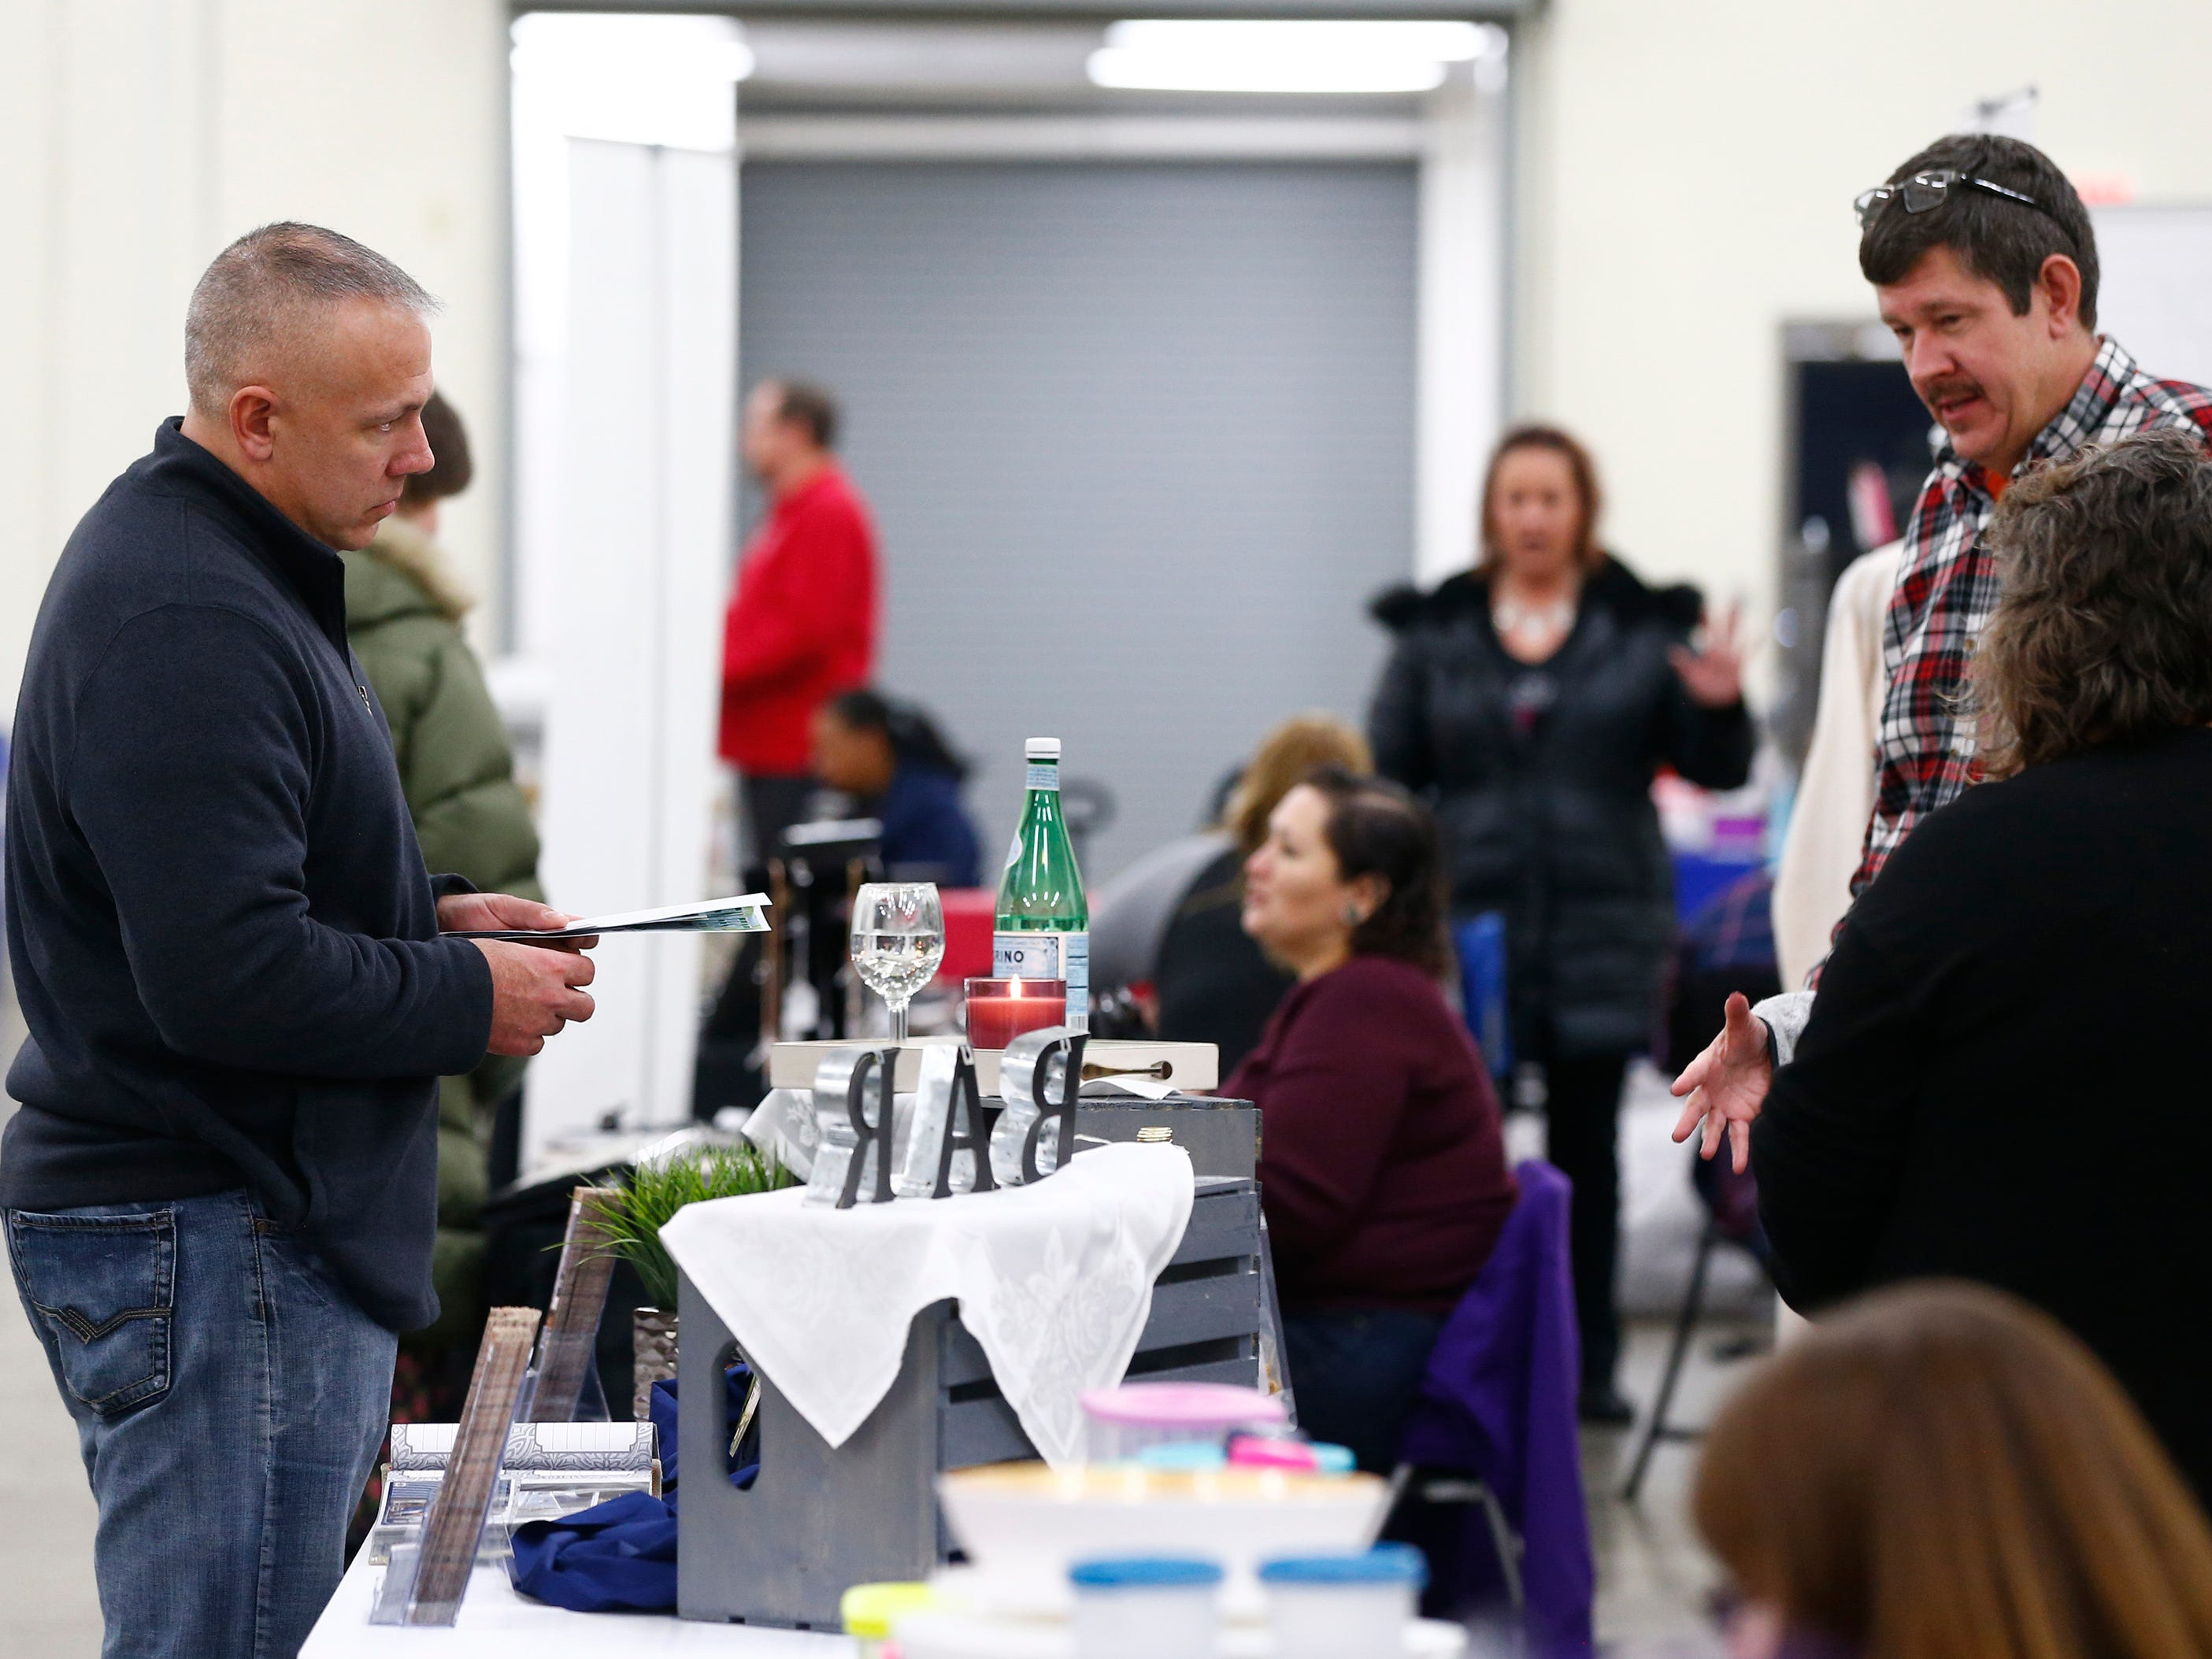 Visitors talk with vendors during a business winter vendor event hosted by Beer Me. Waukee, a beer-inspired Milwaukee apparel brand, at the Waukesha County Expo Center on Jan. 19.